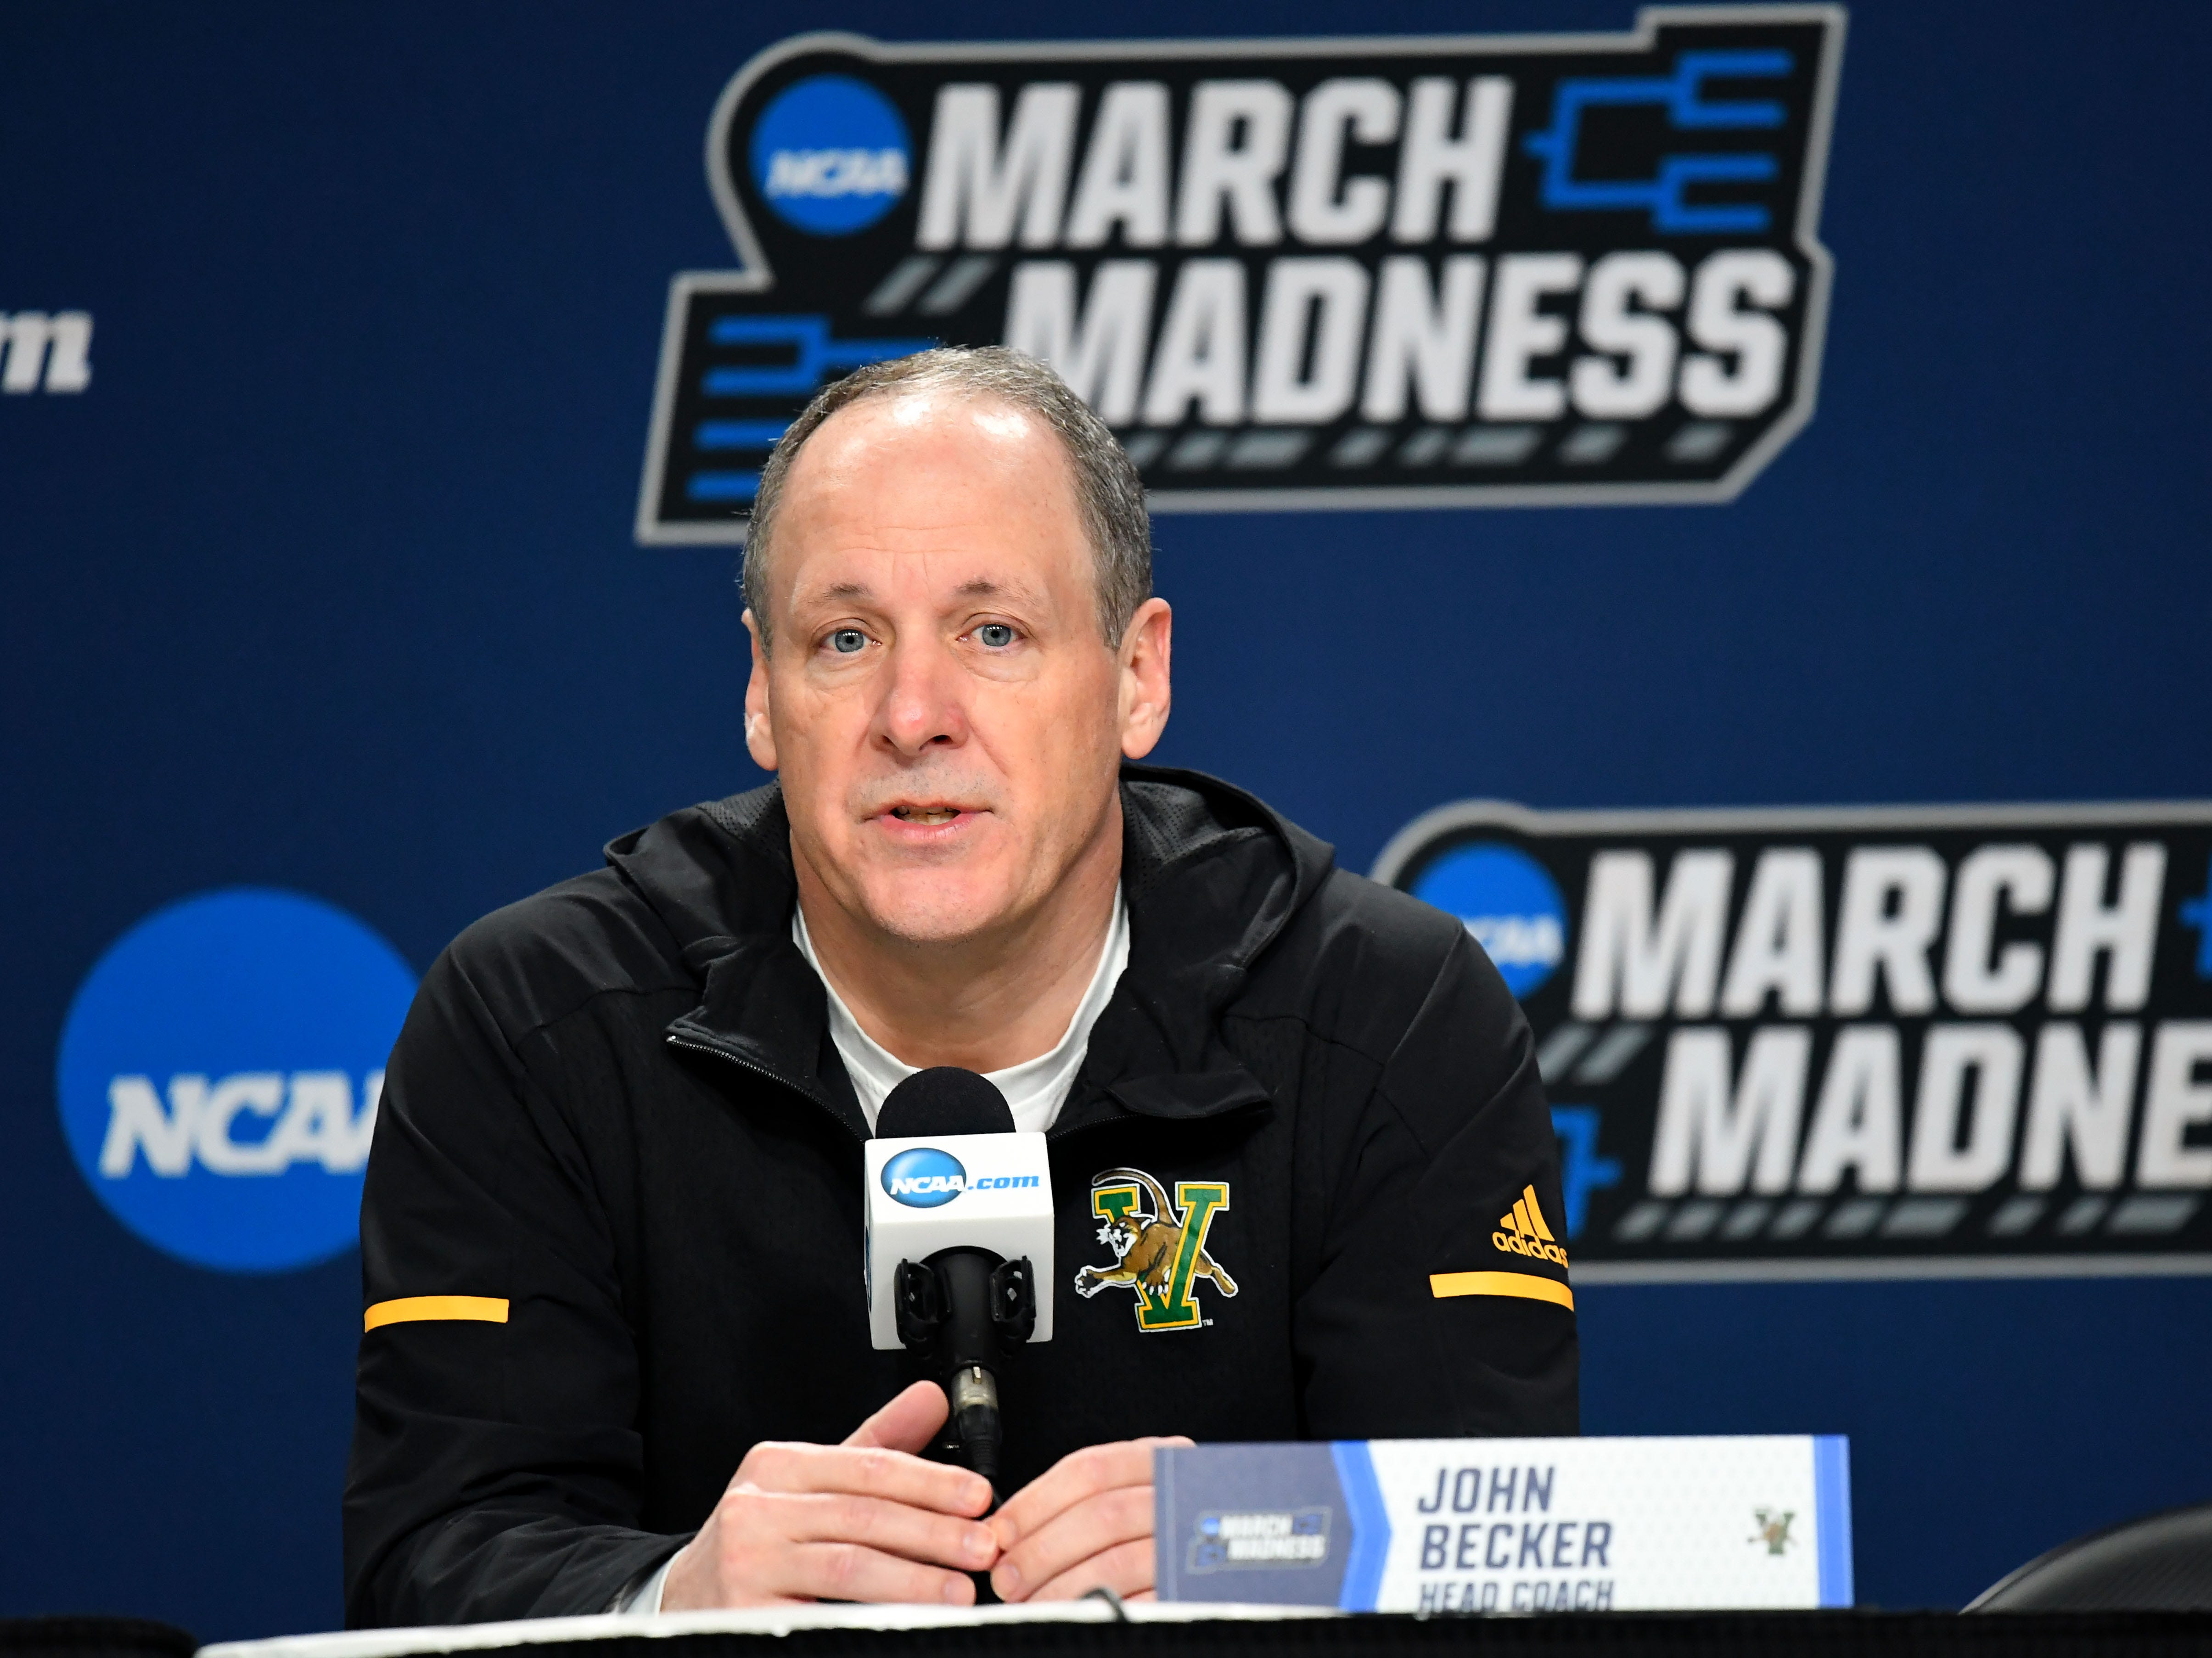 Mar 20, 2019; Hartford, CT, USA; Vermont Catamounts head coach John Becker speaks with the media before a practice in the first round of the 2019 NCAA Tournament at XL Center. Mandatory Credit: Robert Deutsch-USA TODAY Sports